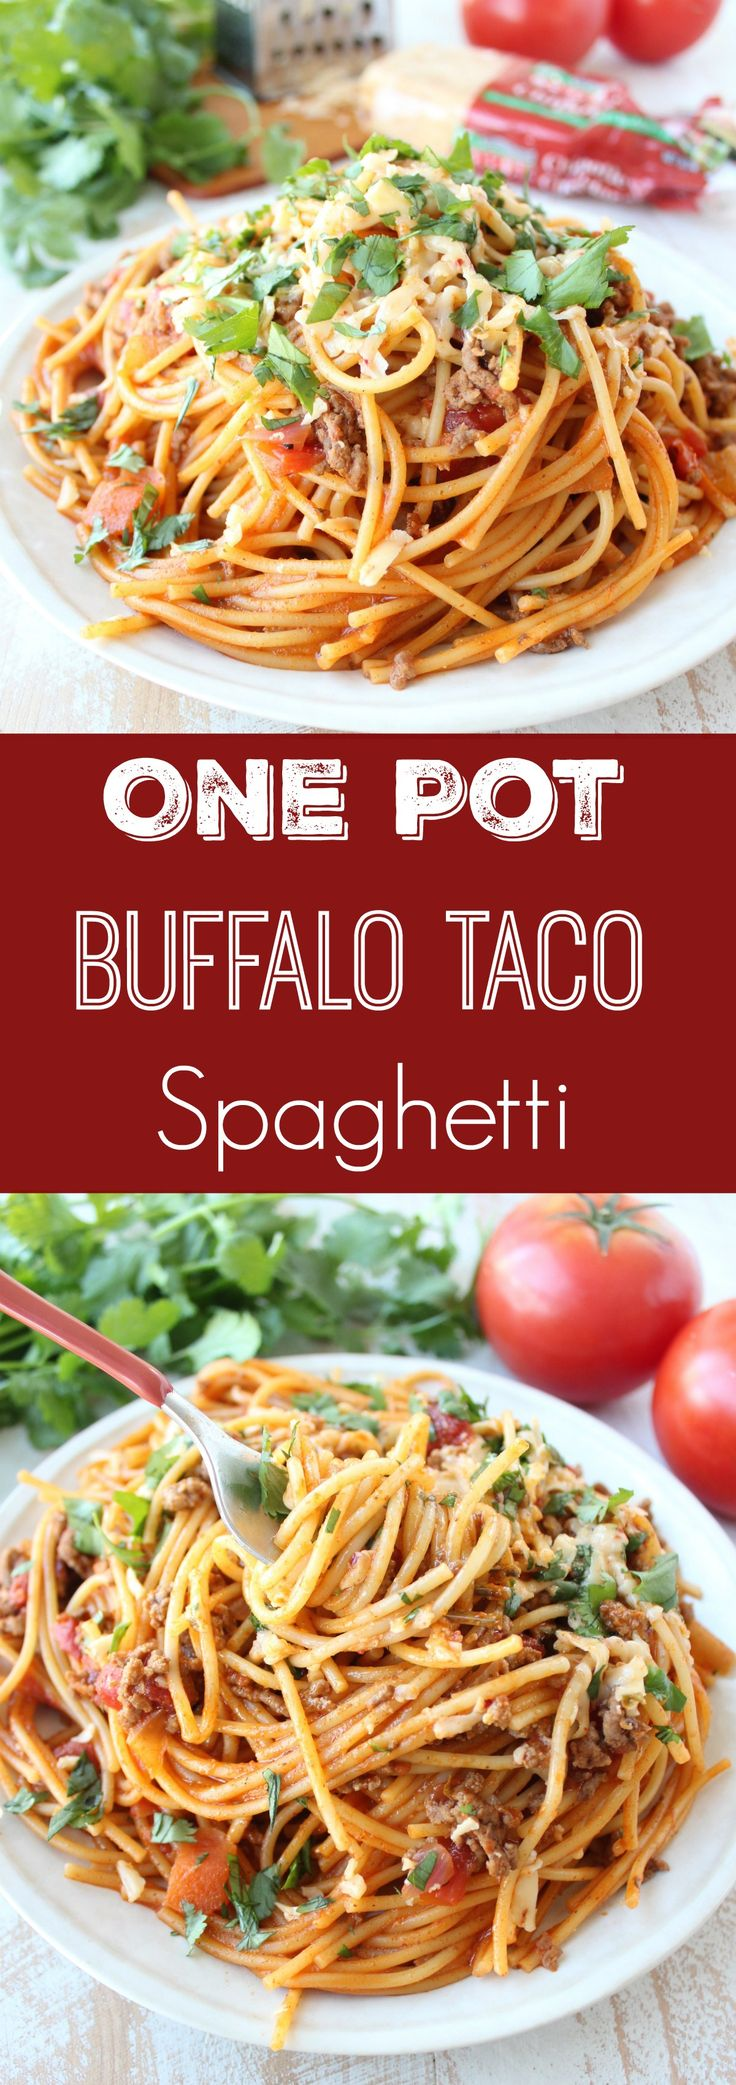 In one pot and 29 minutes, make this scrumptious Buffalo Taco Spaghetti recipe, perfect for weeknight dinners in a hurry!